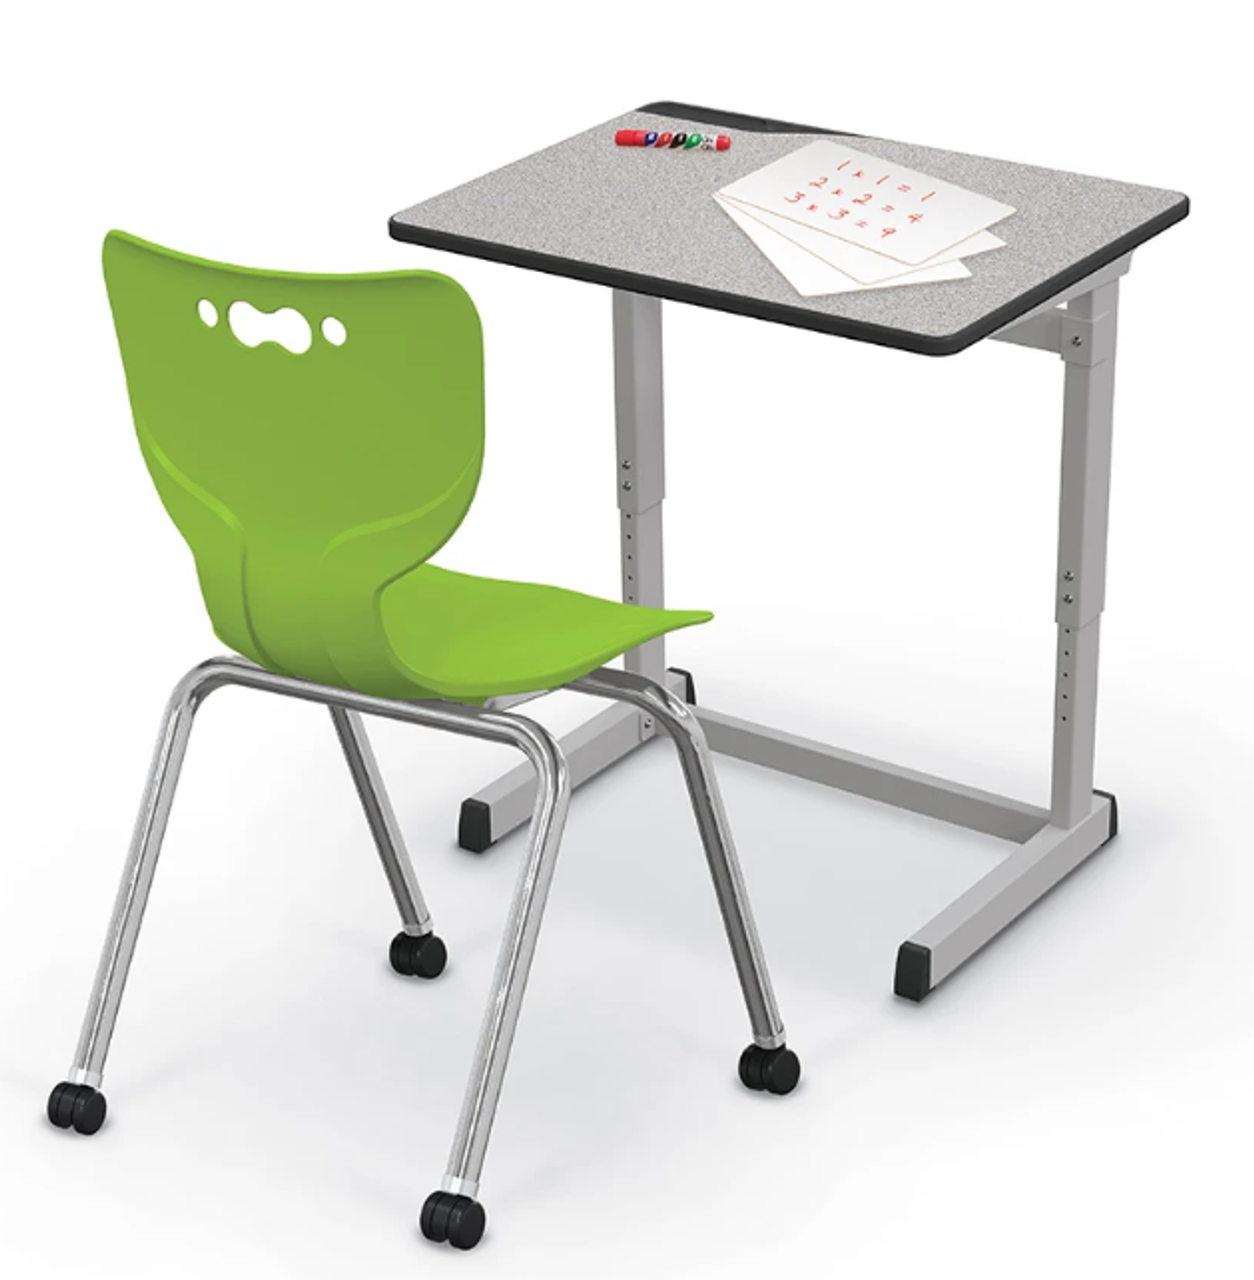 Balt 42H Bundle Essential Silverwood Student Desk with Hierarchy Caster  Chair and Lap Boards